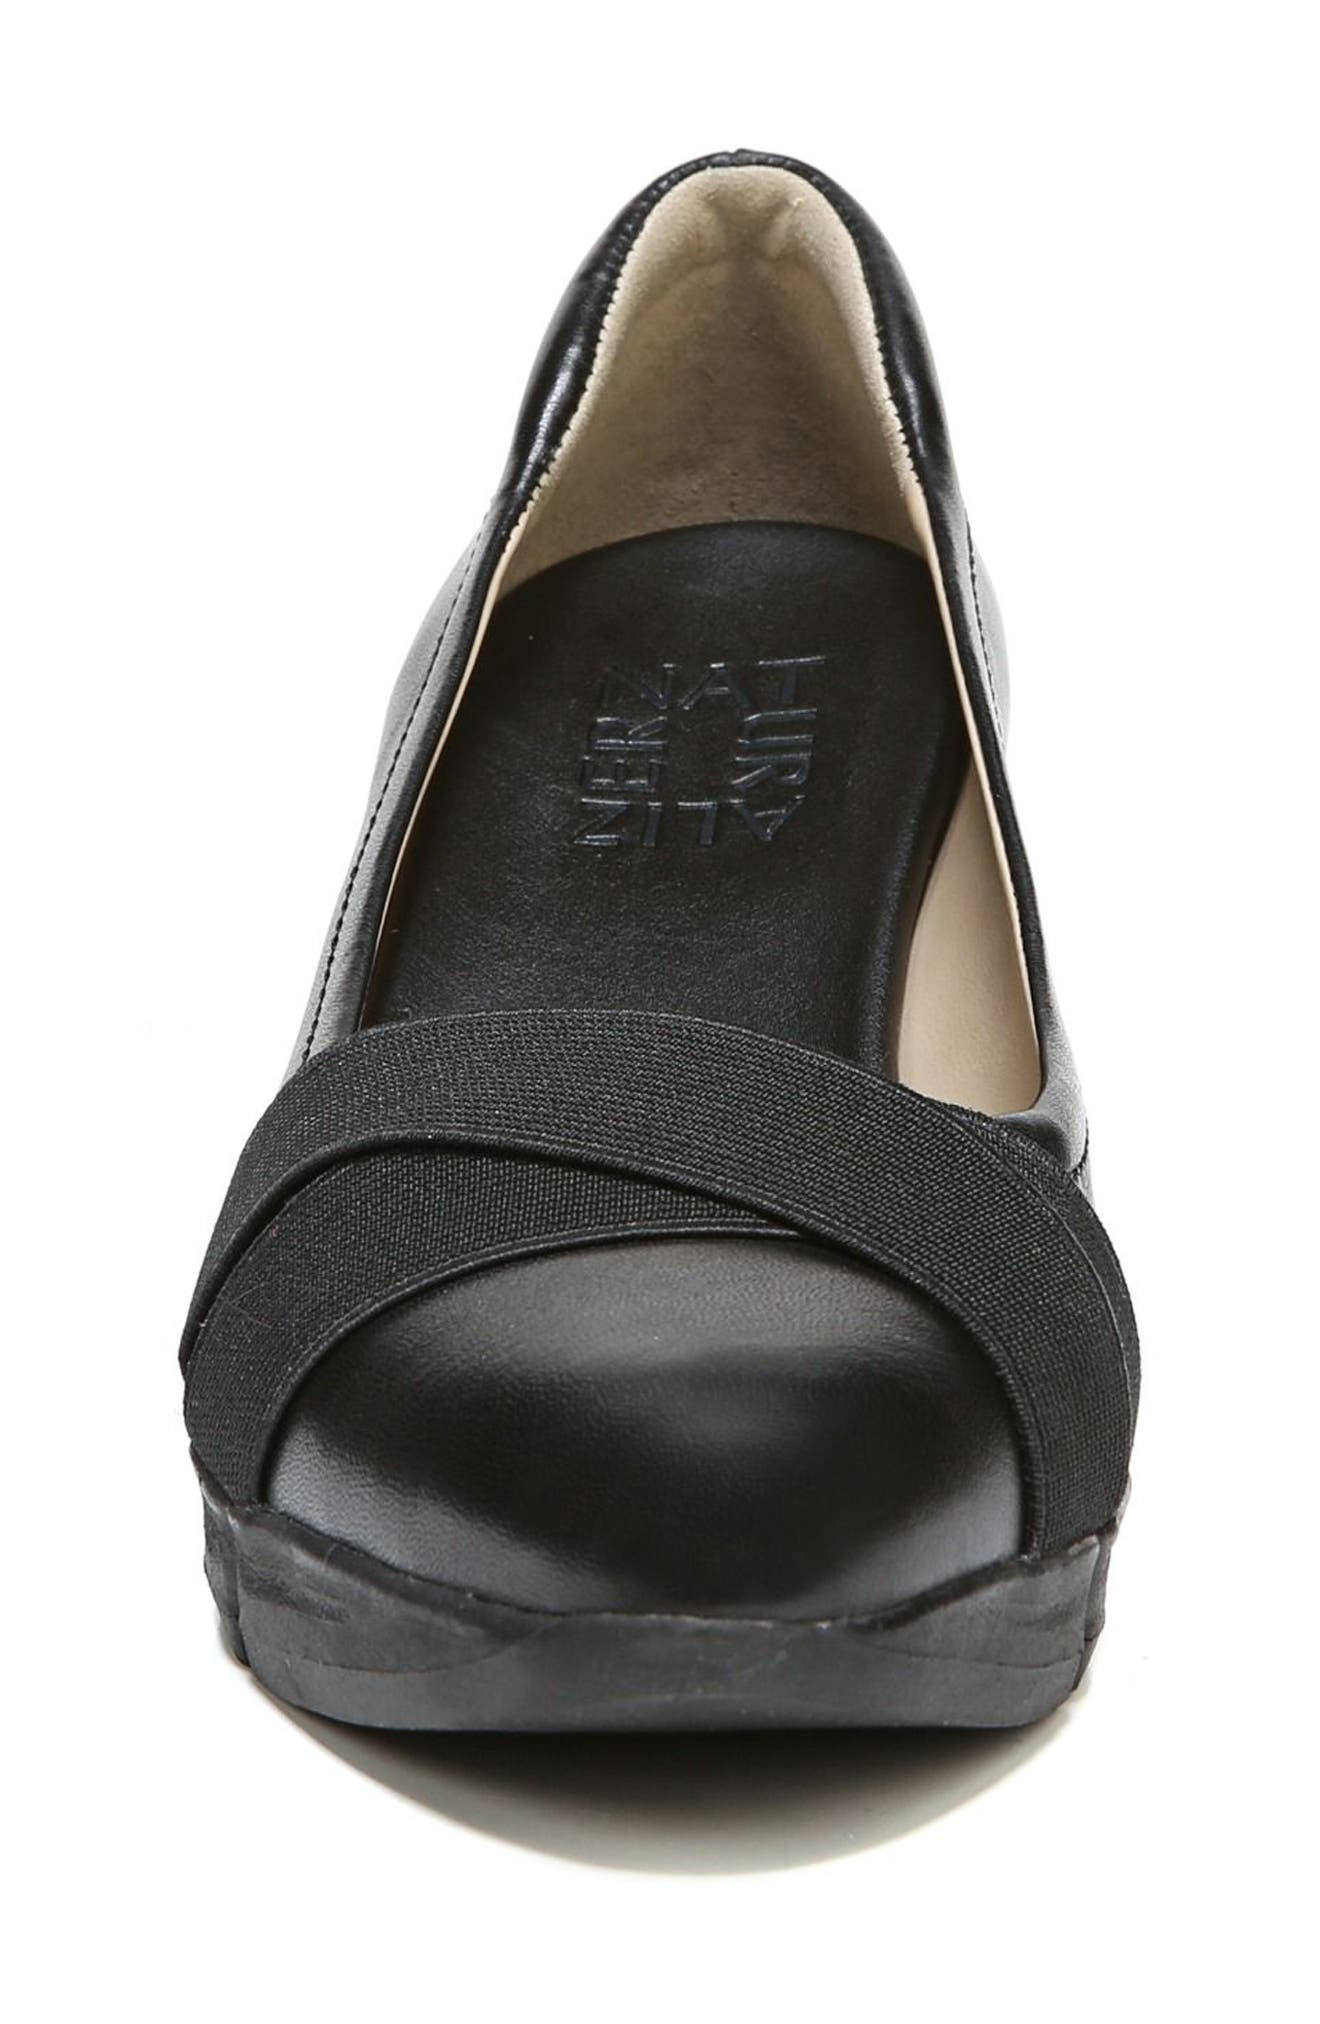 Harlyn Wedge Pump,                             Alternate thumbnail 4, color,                             BLACK LEATHER